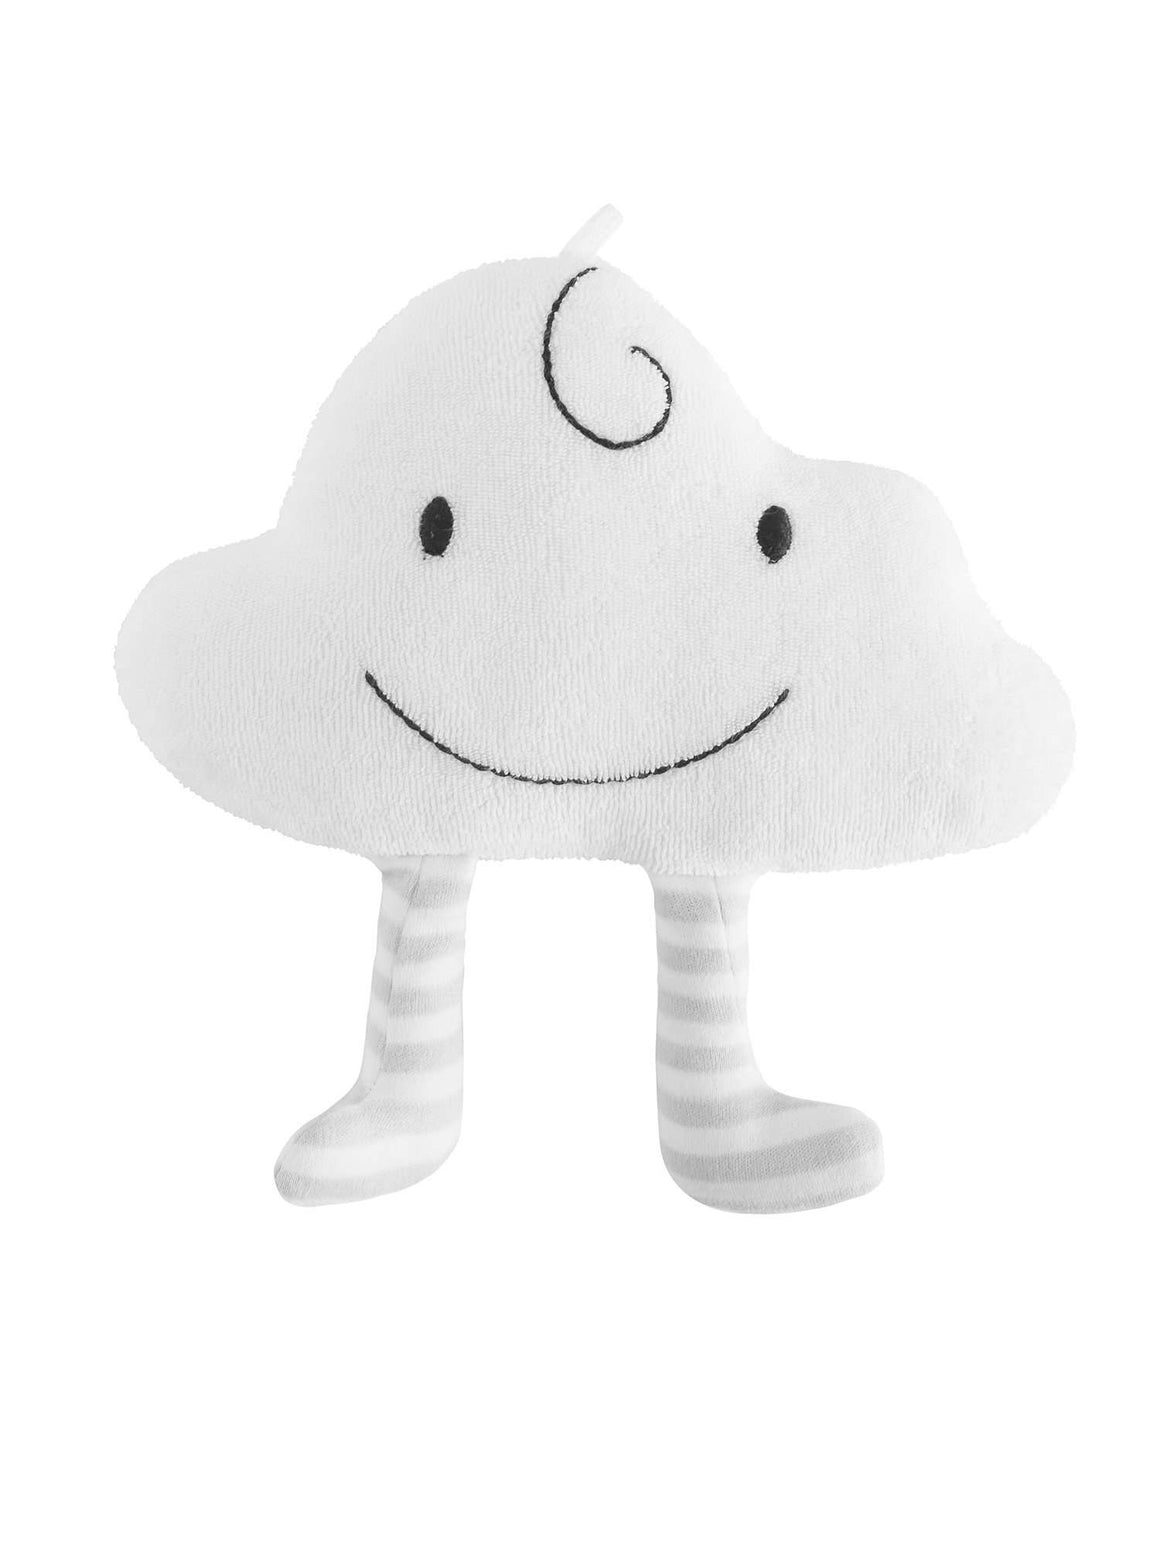 Under The Nile Happy the Cloud Plush Toy